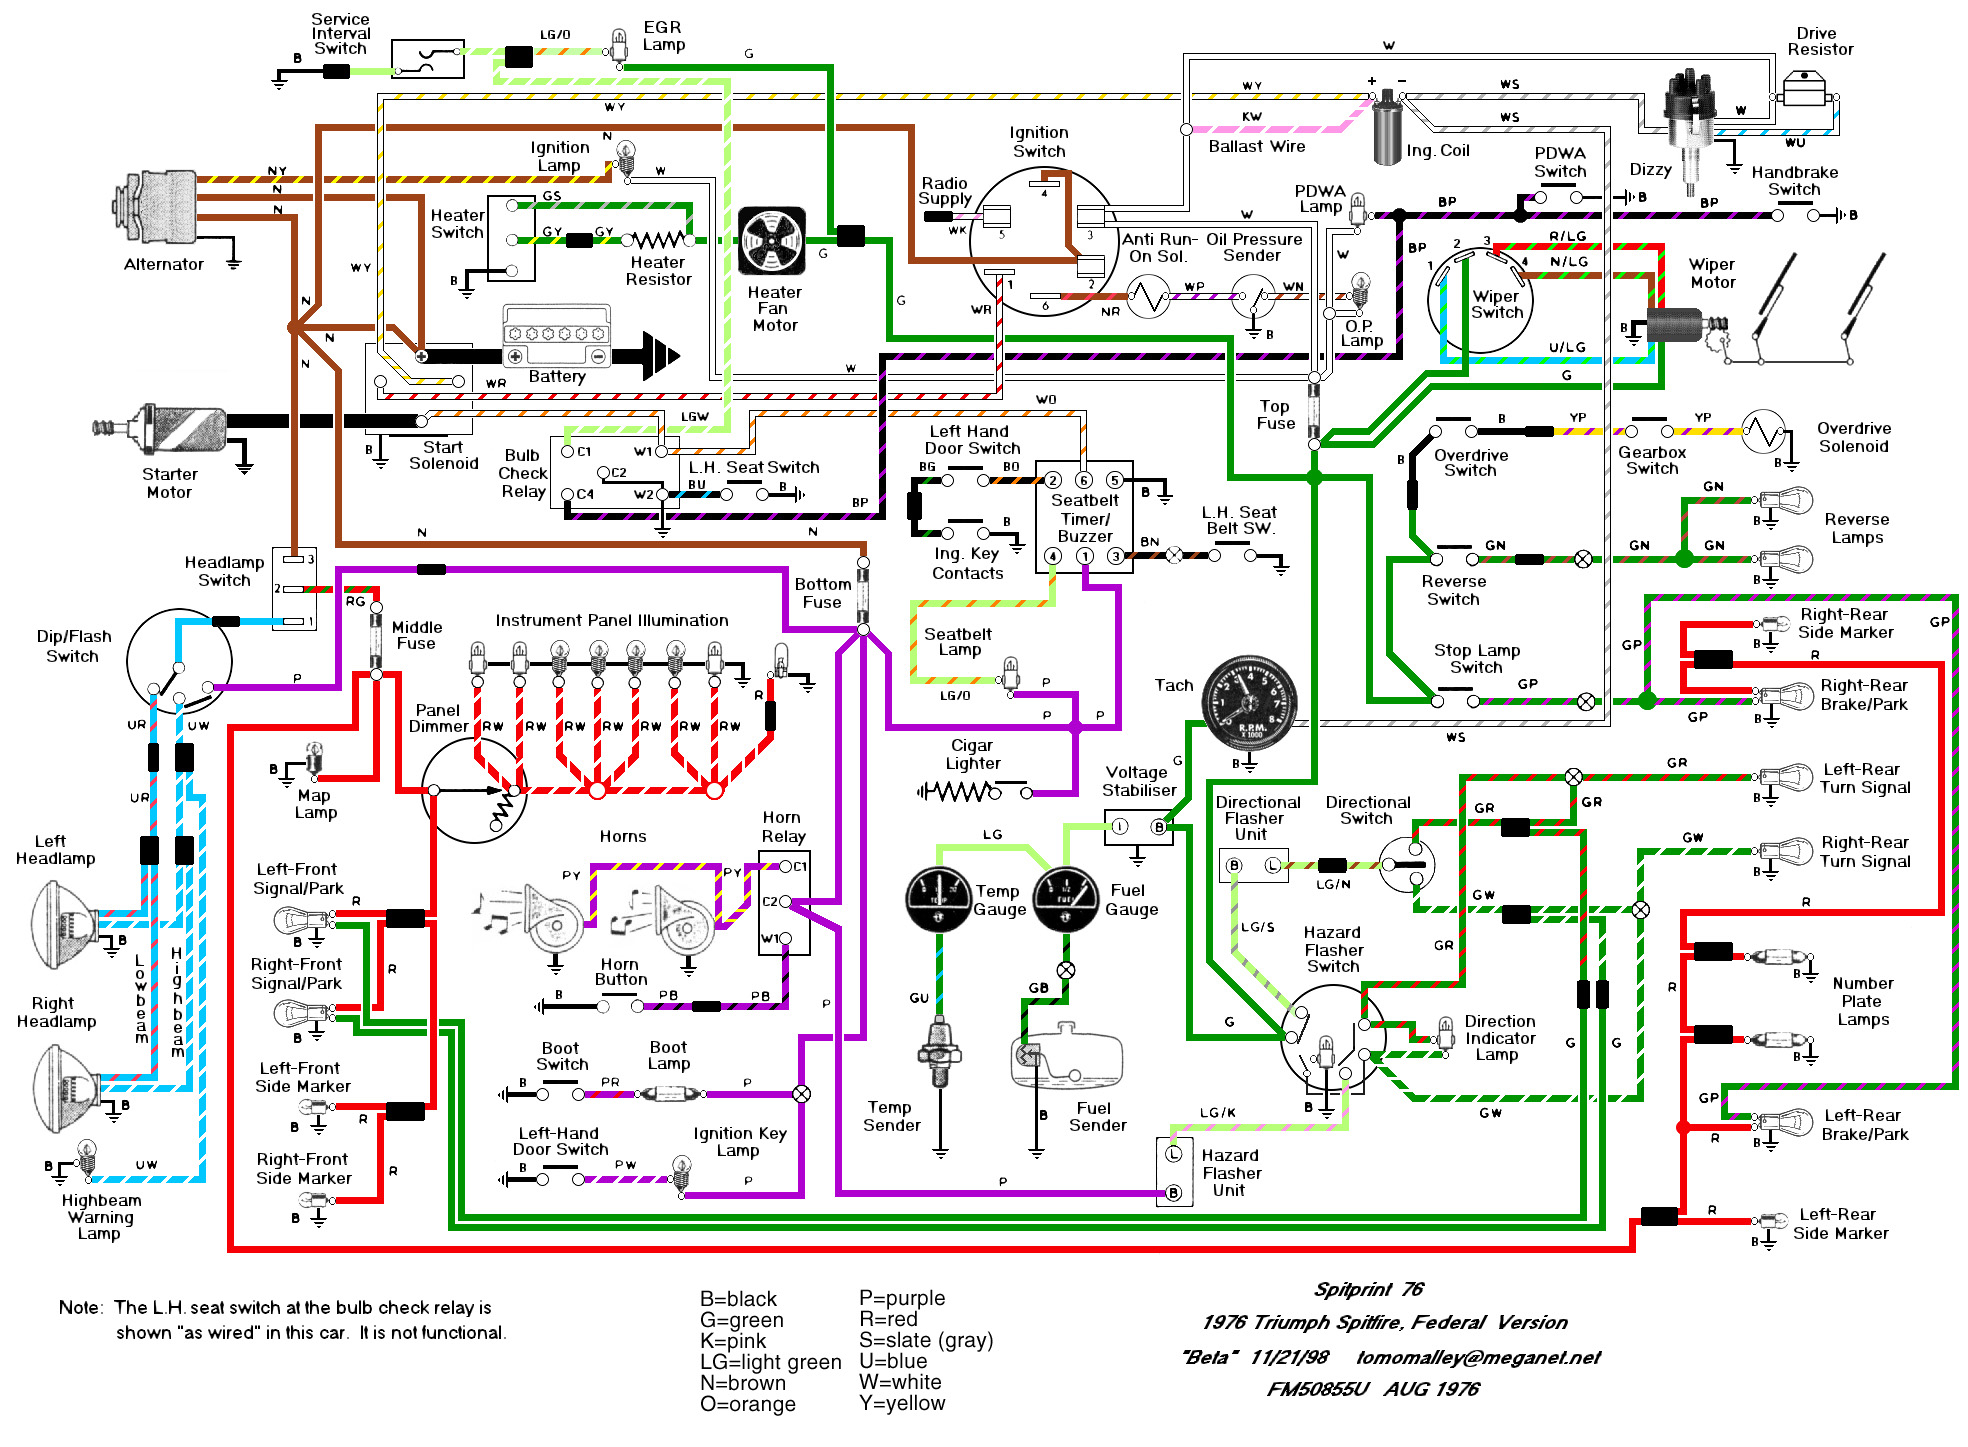 76diagram wiring gremlins please help spitfire & gt6 forum triumph morris minor wiring diagram pdf at eliteediting.co